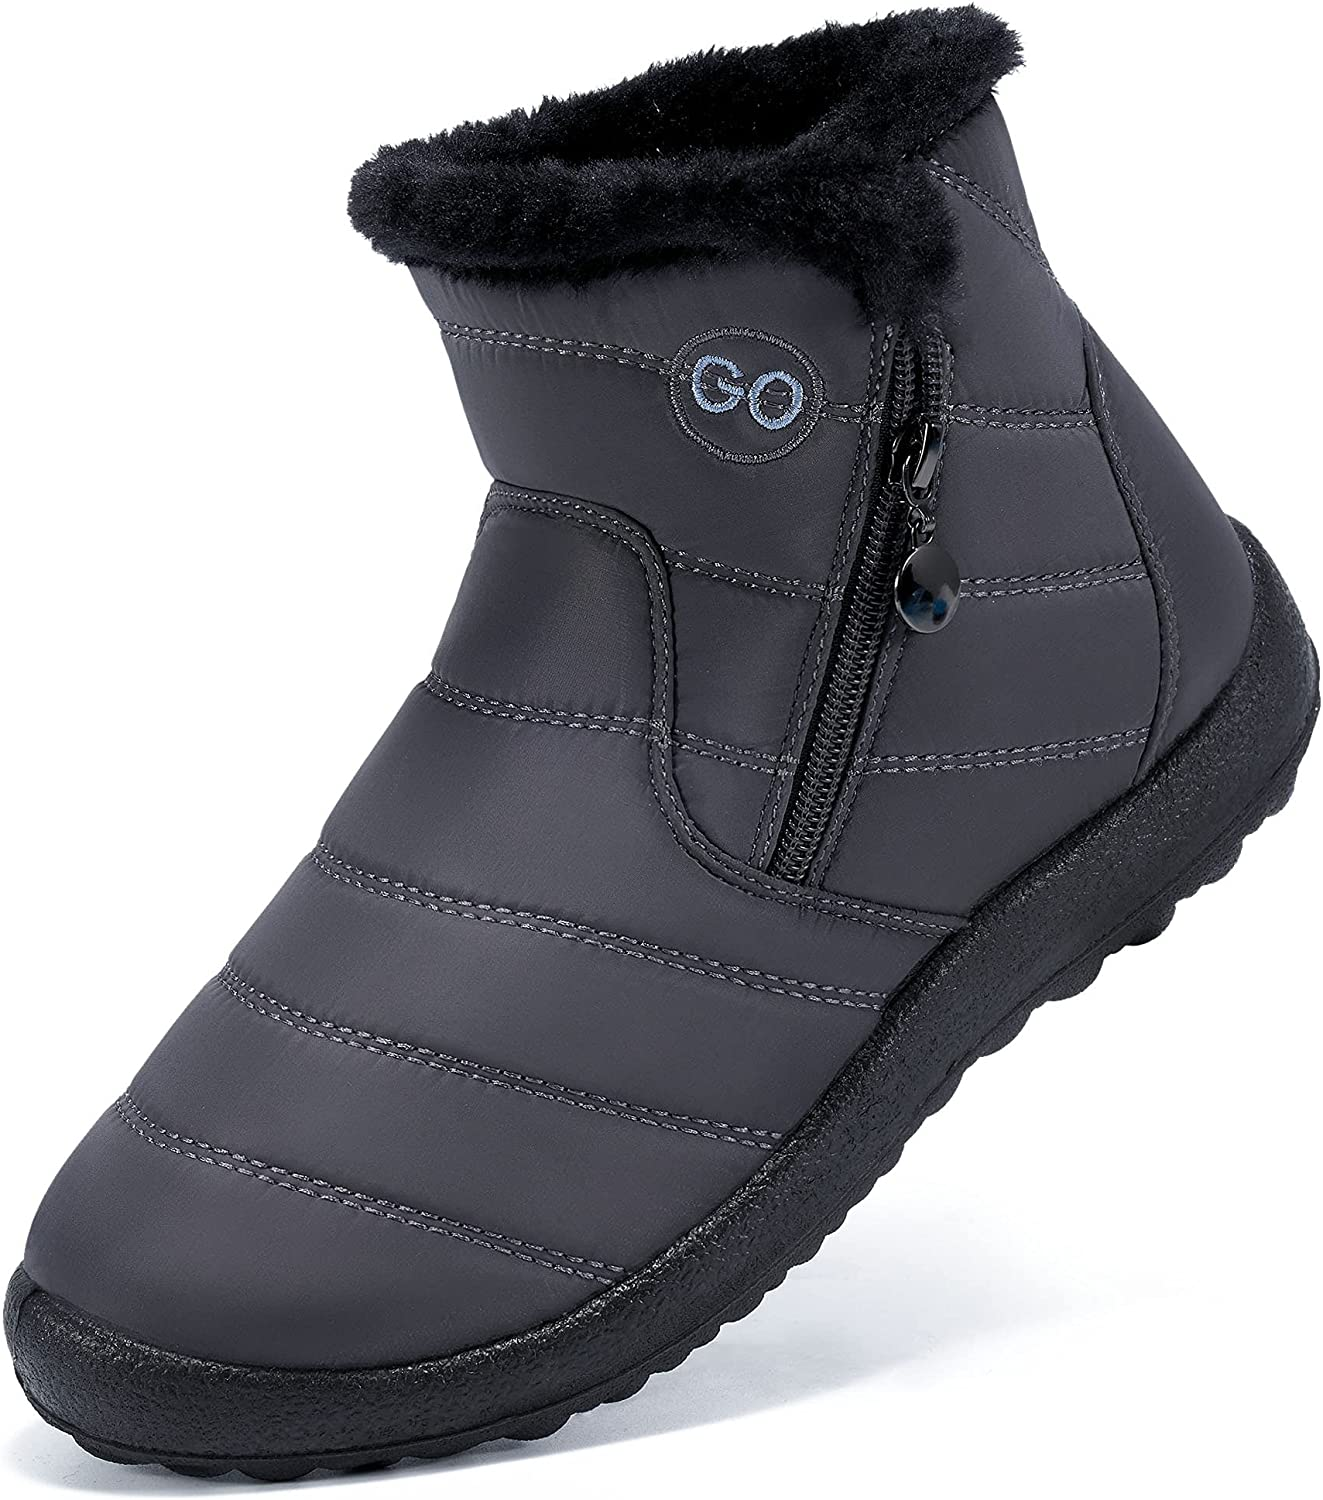 Womens Snow Boots Warm Ankle Waterproof At the price of Max 72% OFF surprise Slip Comfortable Booties